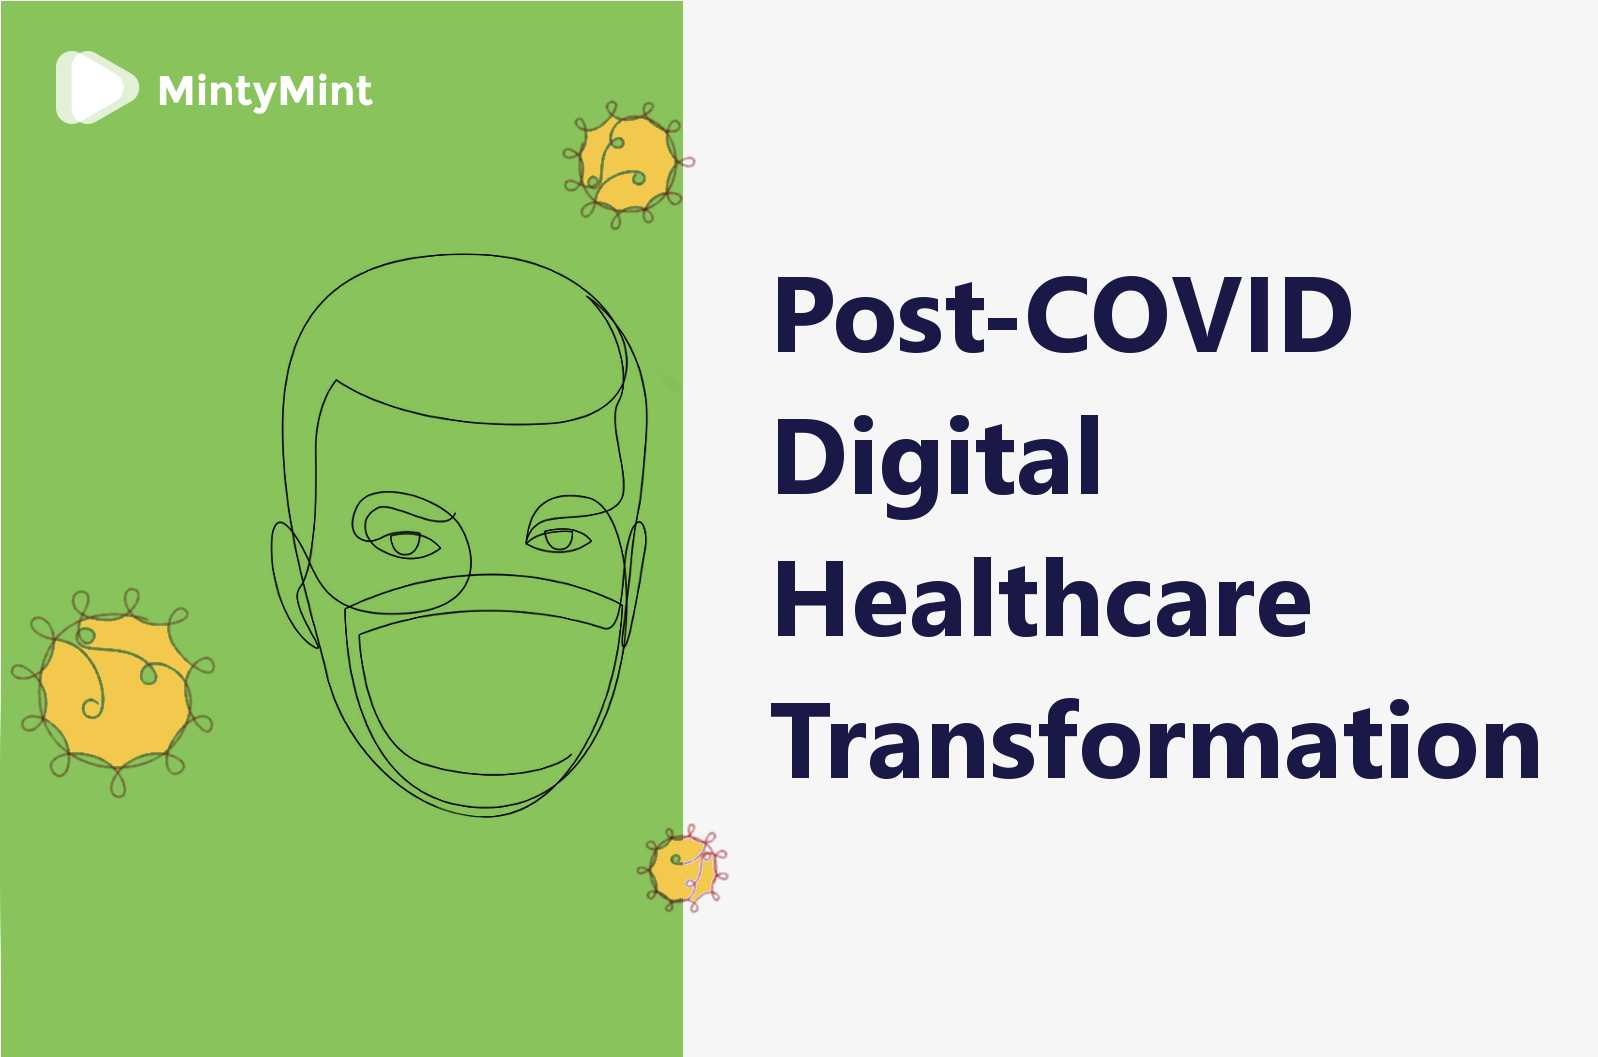 Healthcare transformation in the post-COVID era